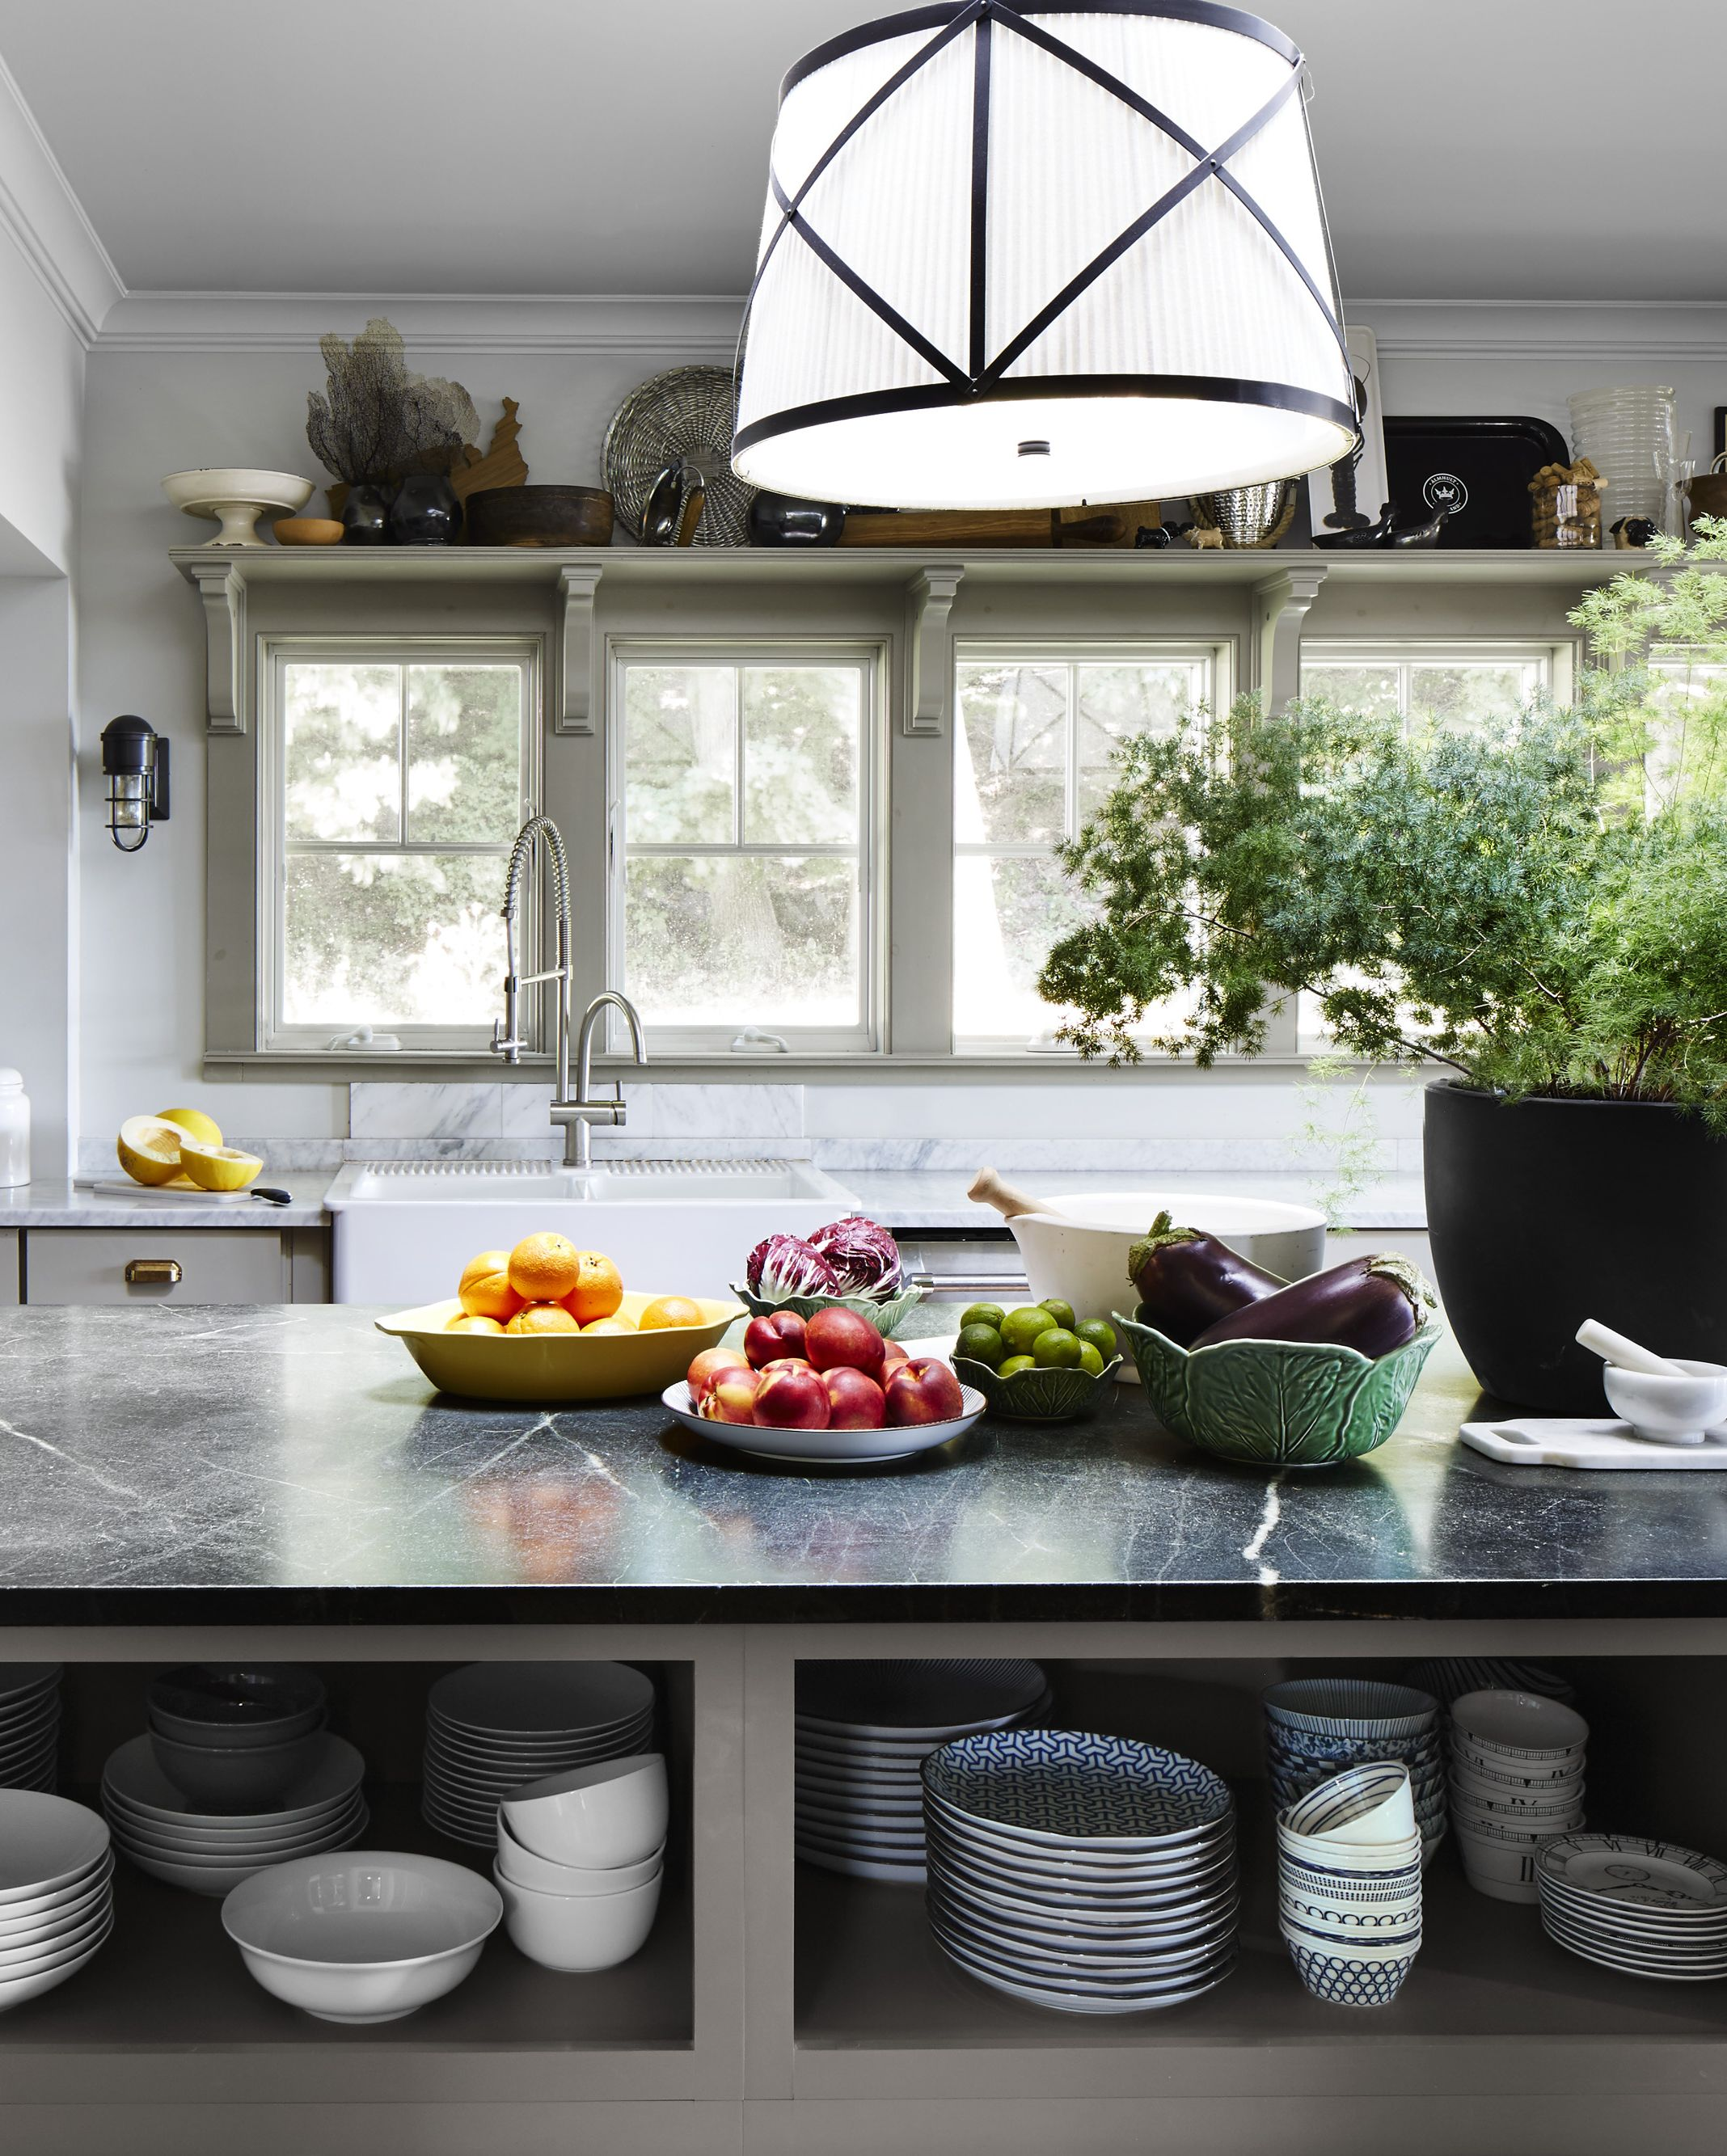 24 Unique Kitchen Storage Ideas